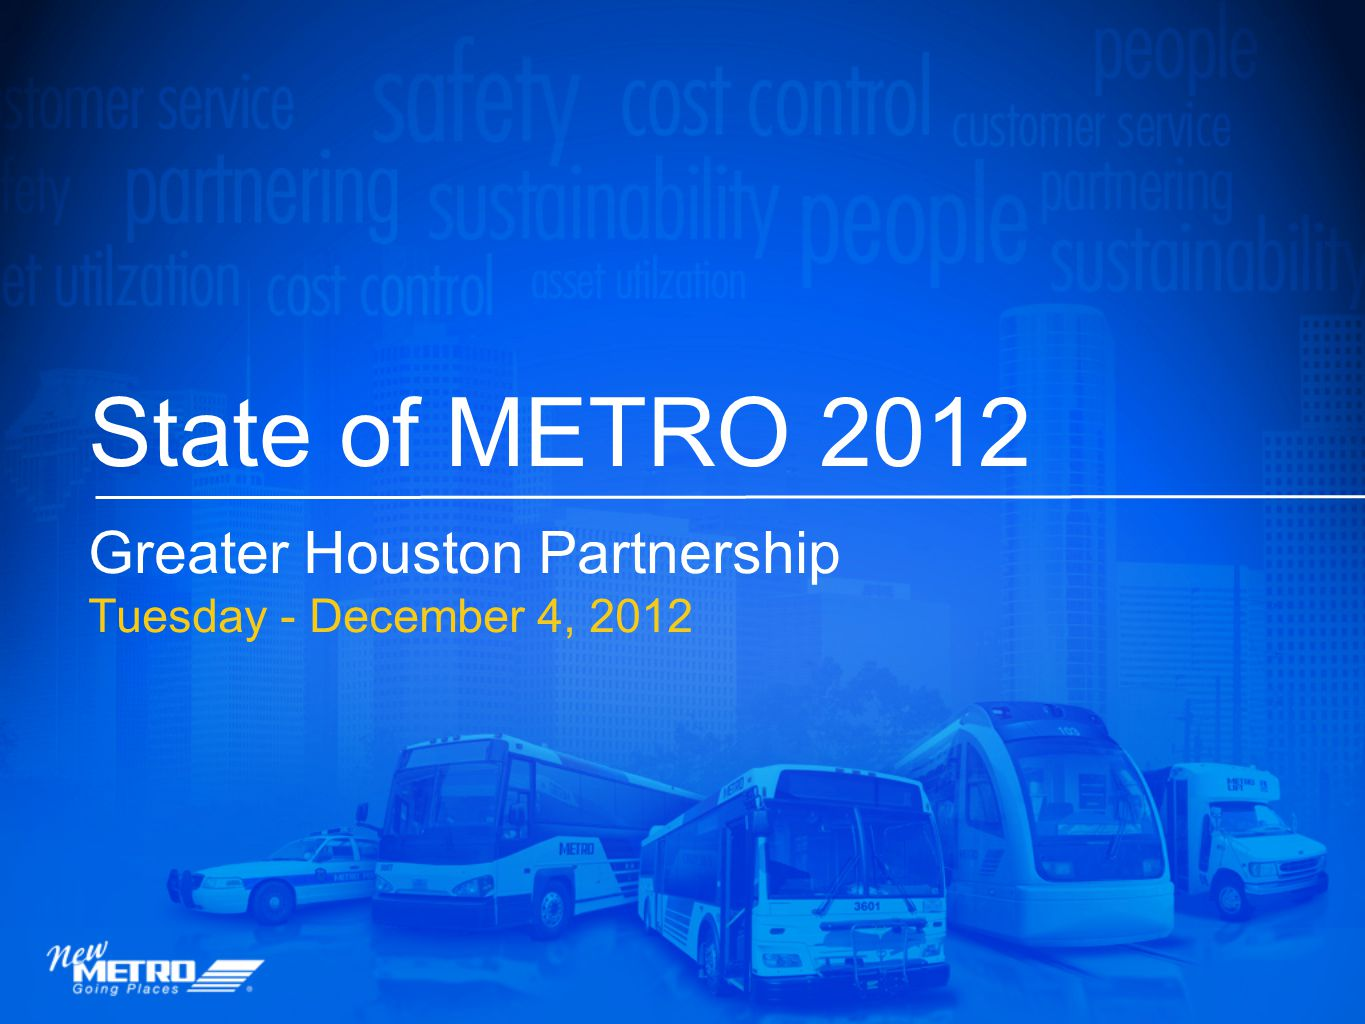 State of METRO 2012 Greater Houston Partnership Tuesday - December 4, 2012